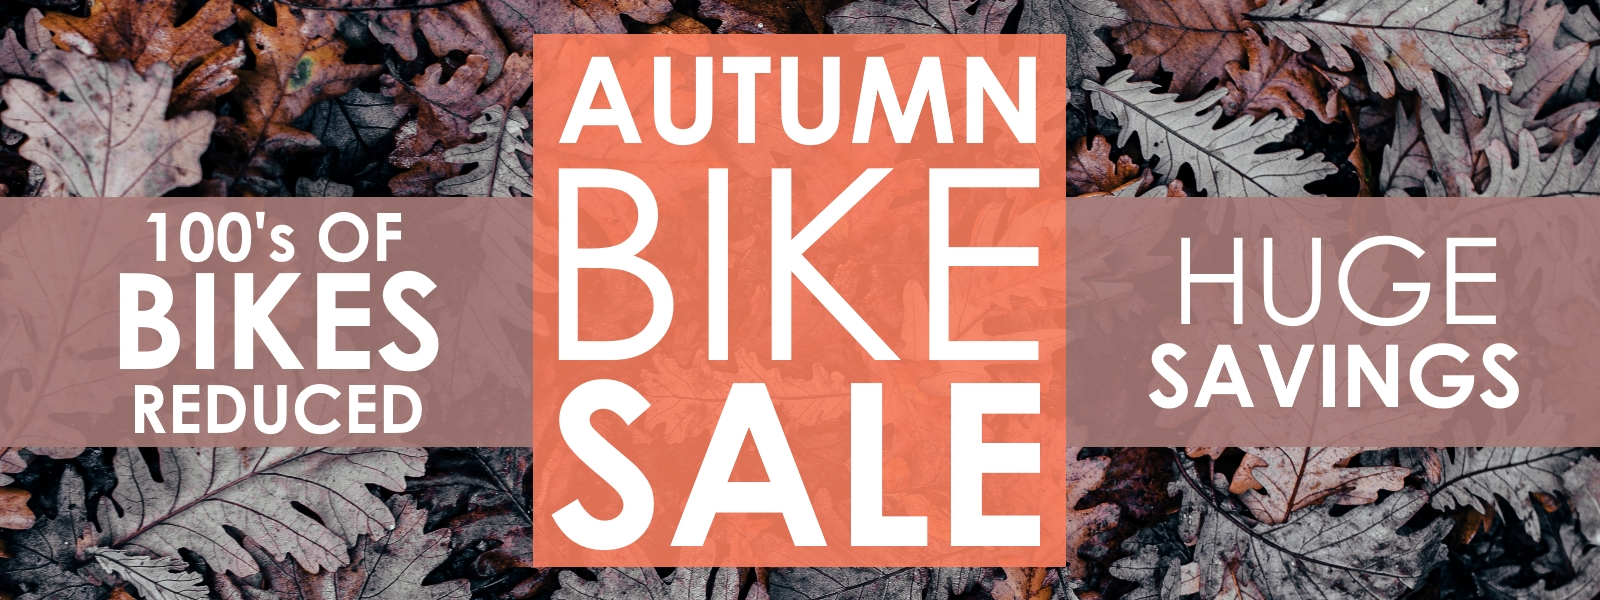 Autumn Bike Sale